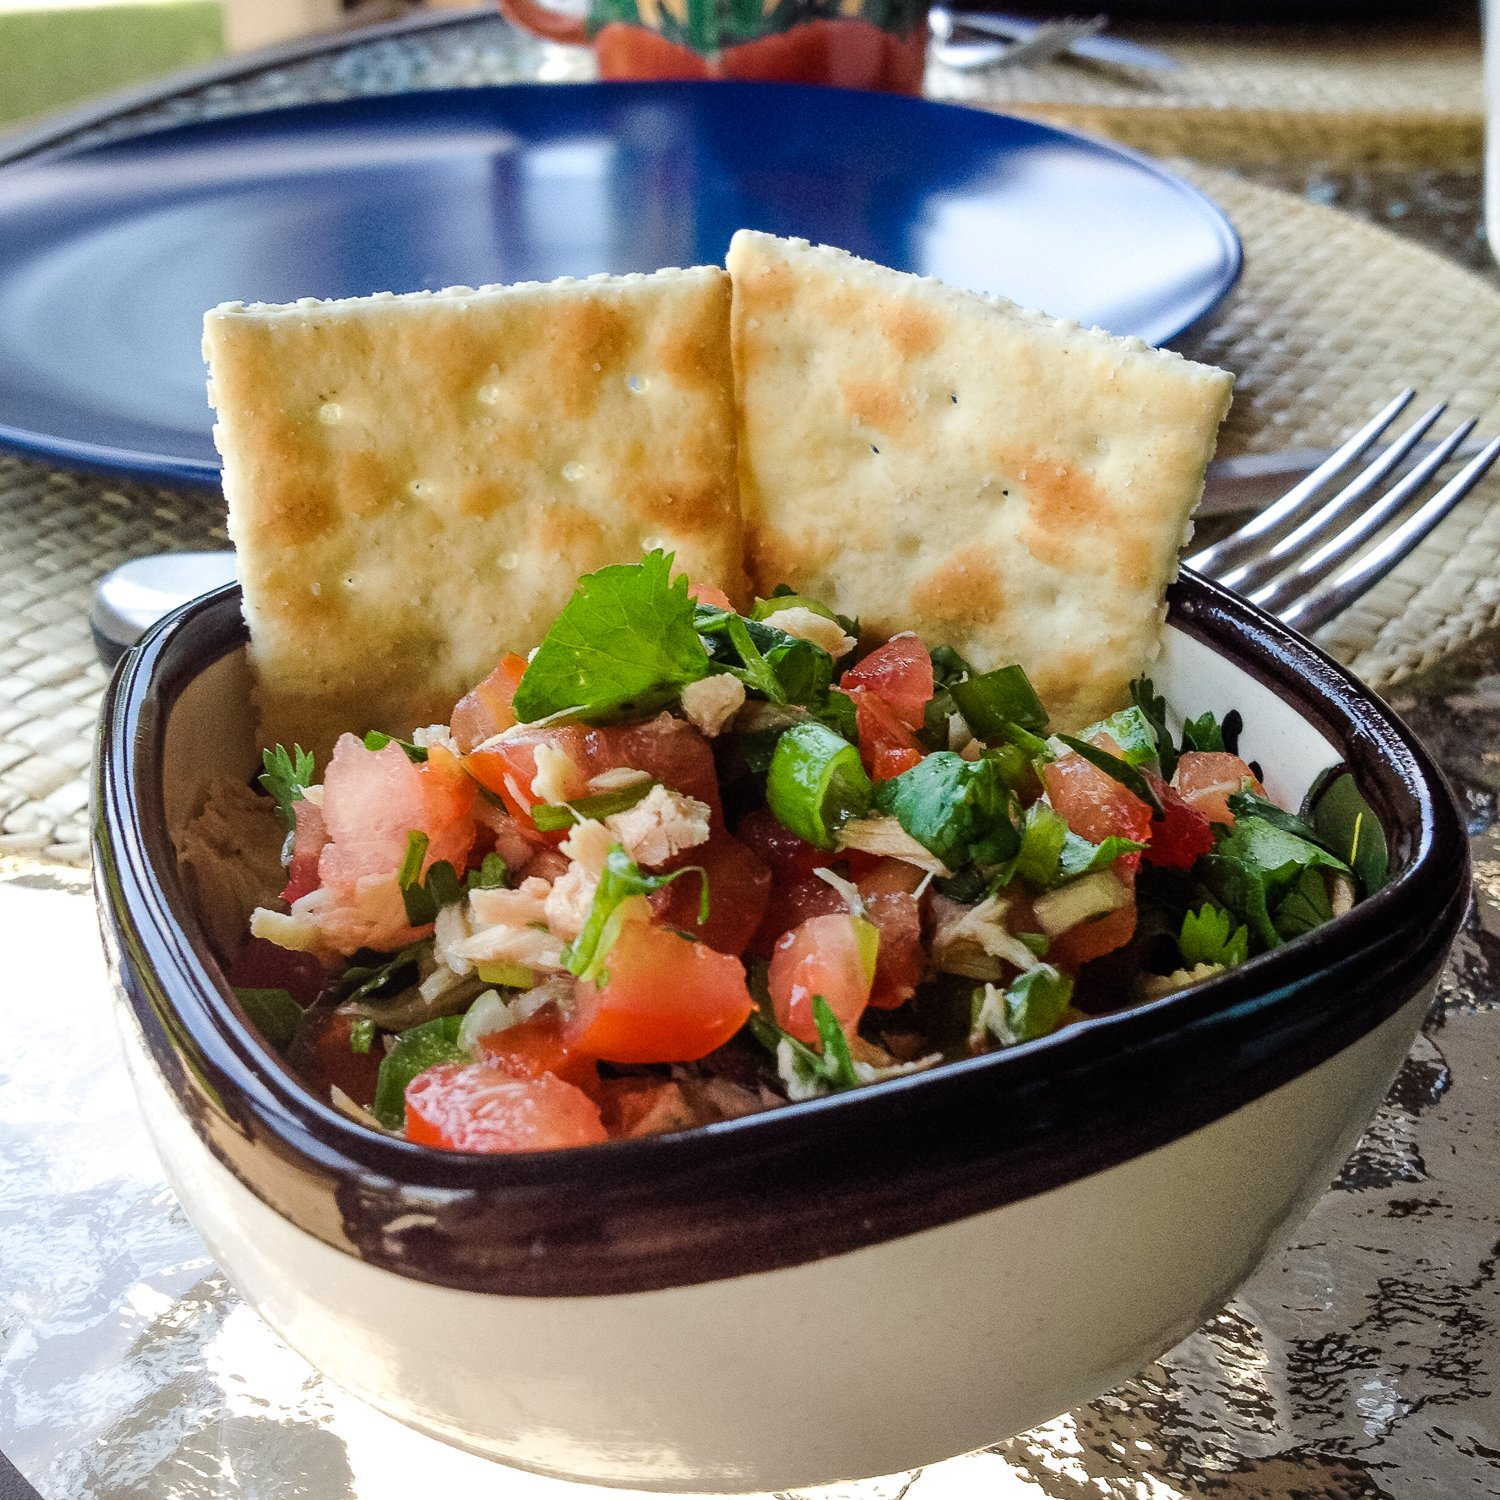 This Authentic Mexican Pico De Gallo With Tuna is a wonderful traditional recipe that I am very fond of. It is a light, refreshing and delicious salsa and I am sure you will enjoy very much. In Mexico, this recipe is served with saltinesas chips are not very popular, but you can definitely have corn tortilla chips instead.